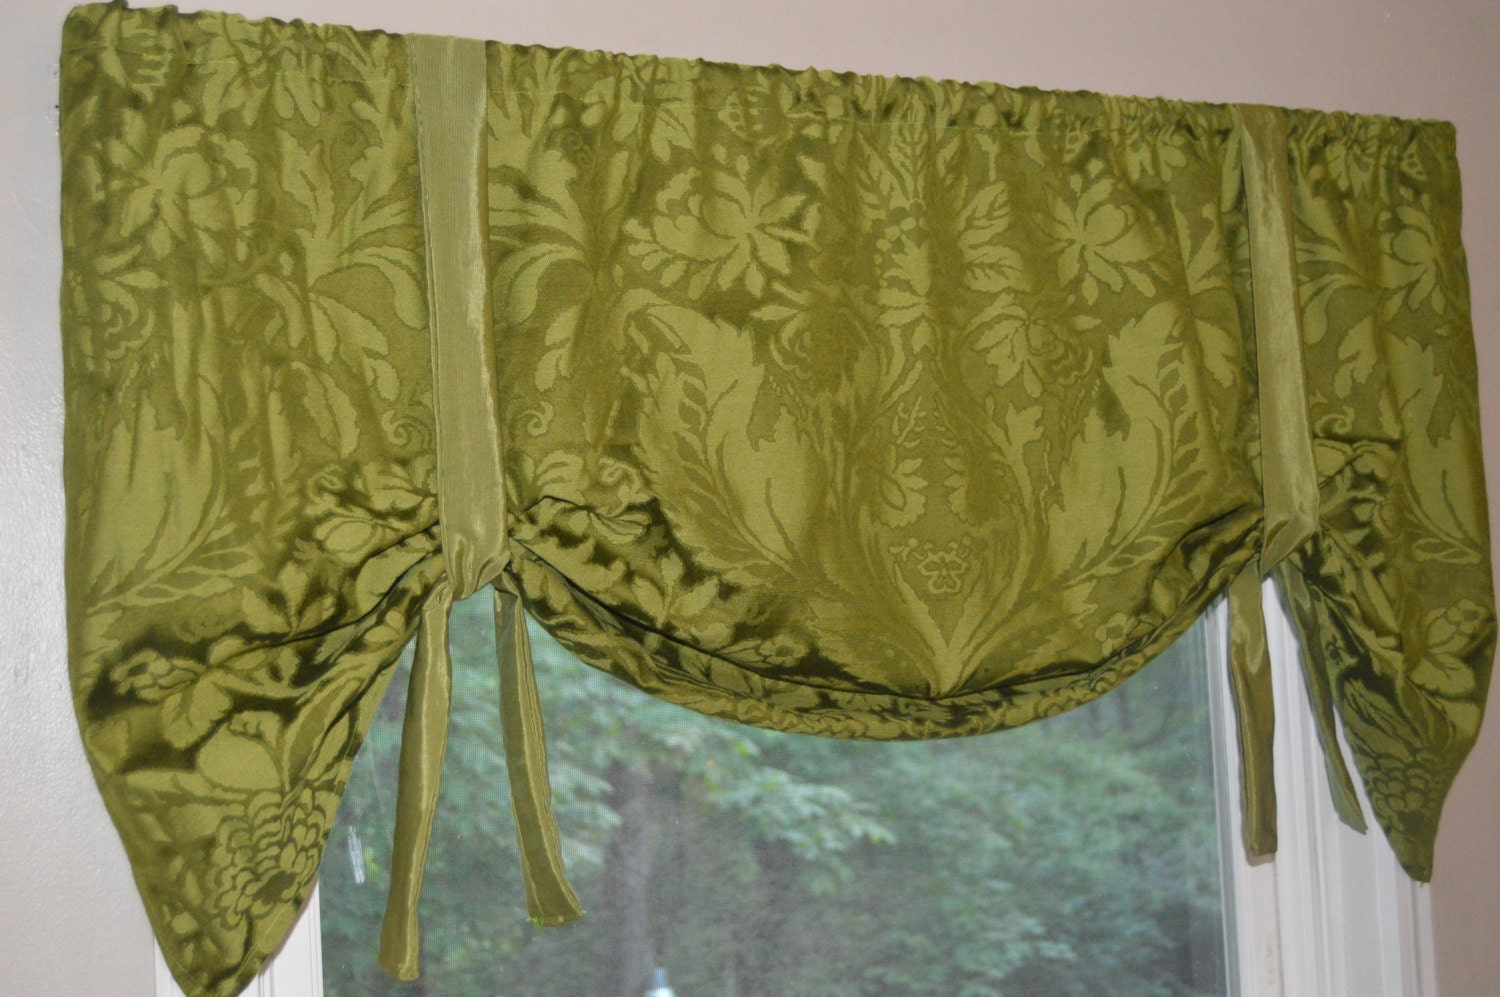 surprise valance rlf bridge knights shop on savings decor home fern s glory valances green